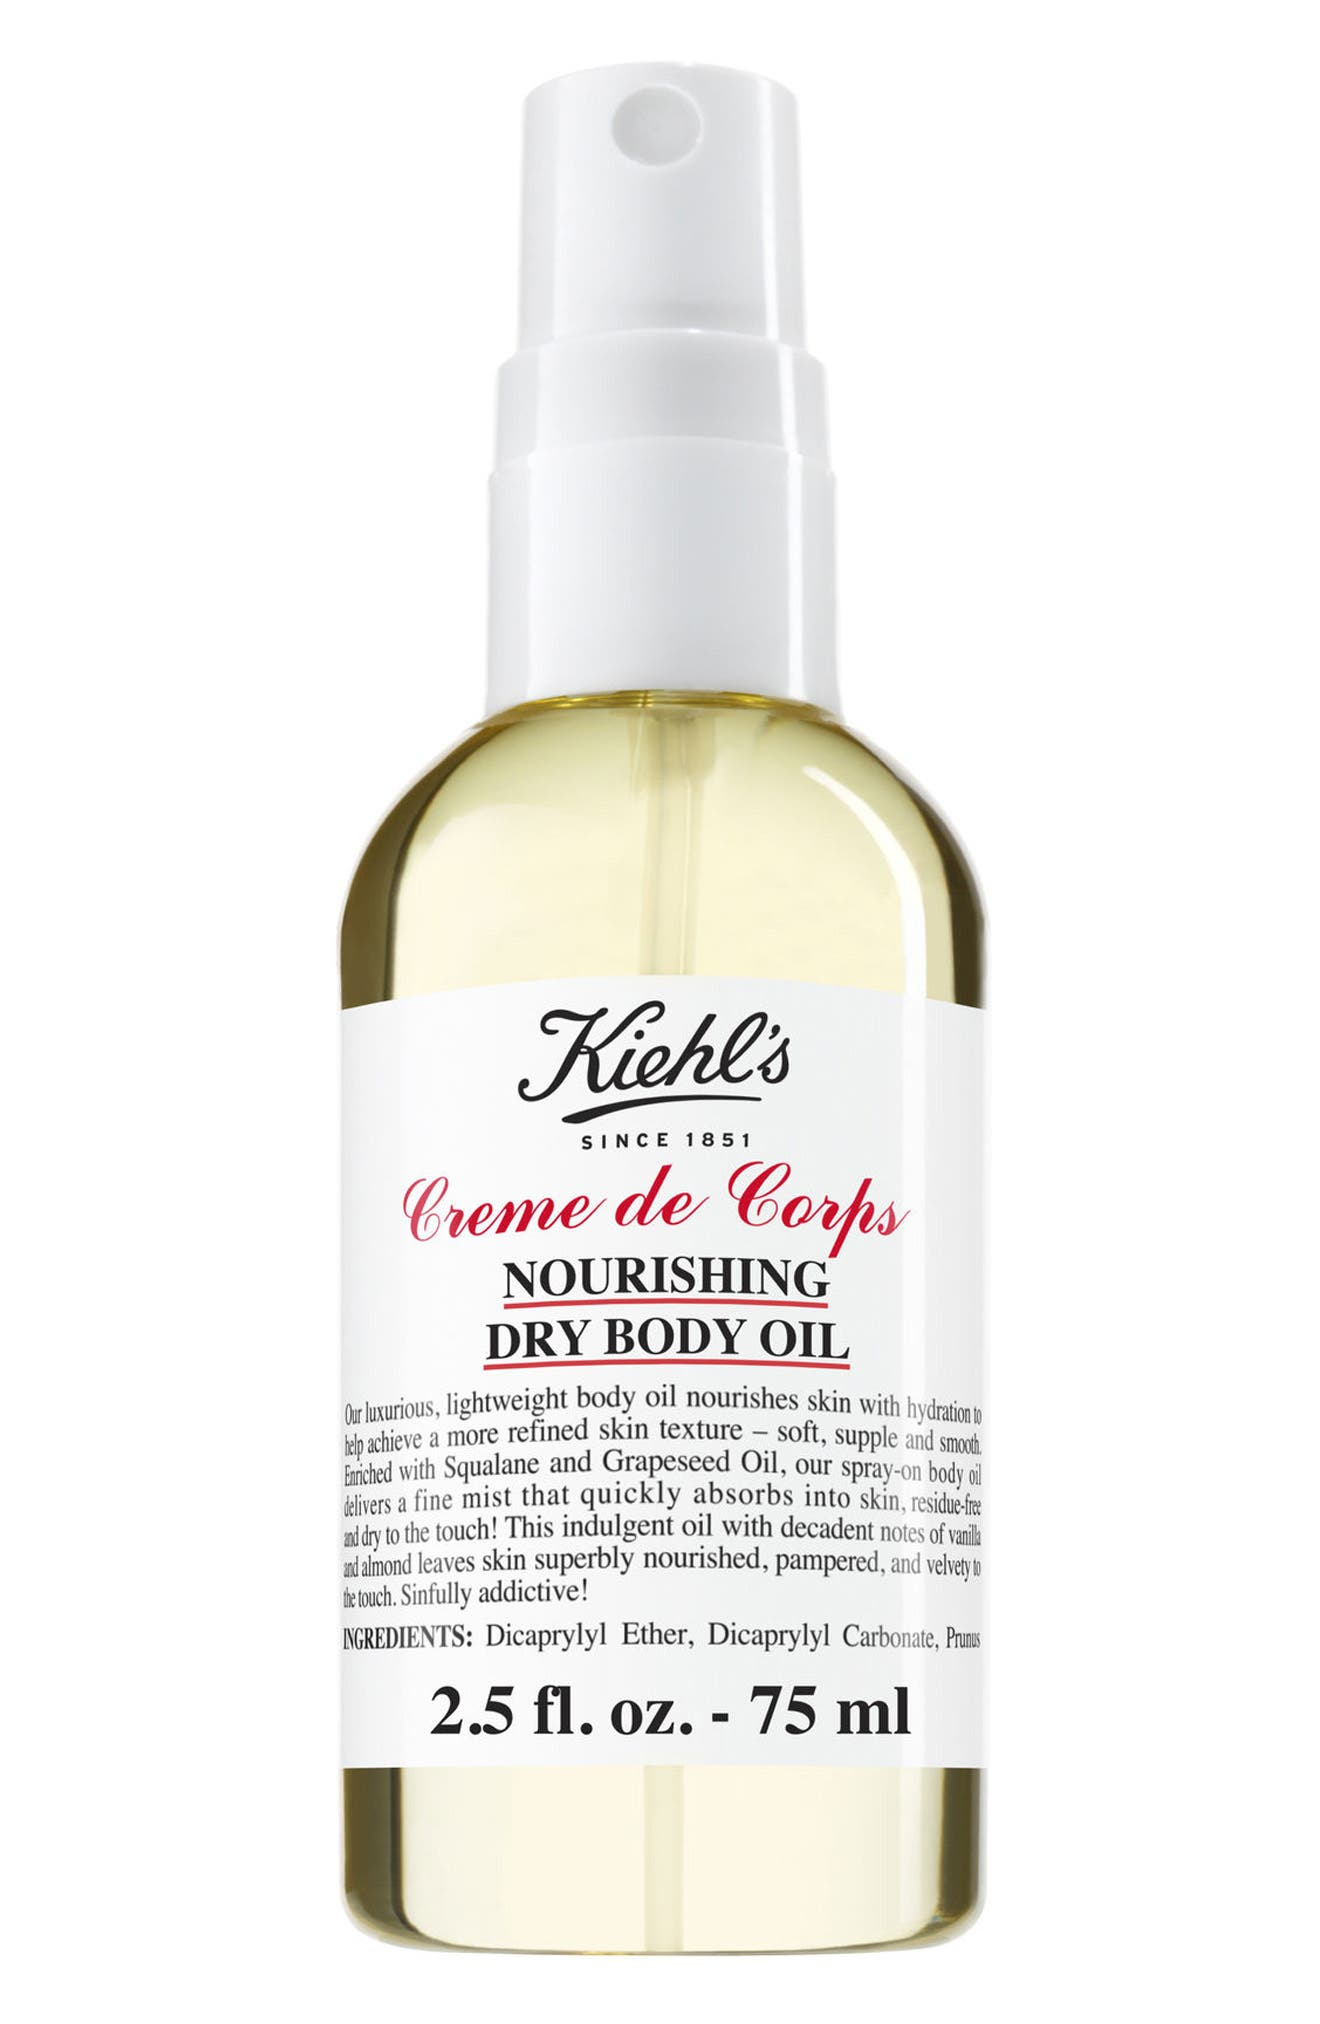 Kiehl's Since 1851 Creme de Corps Nourishing Dry Body Oil